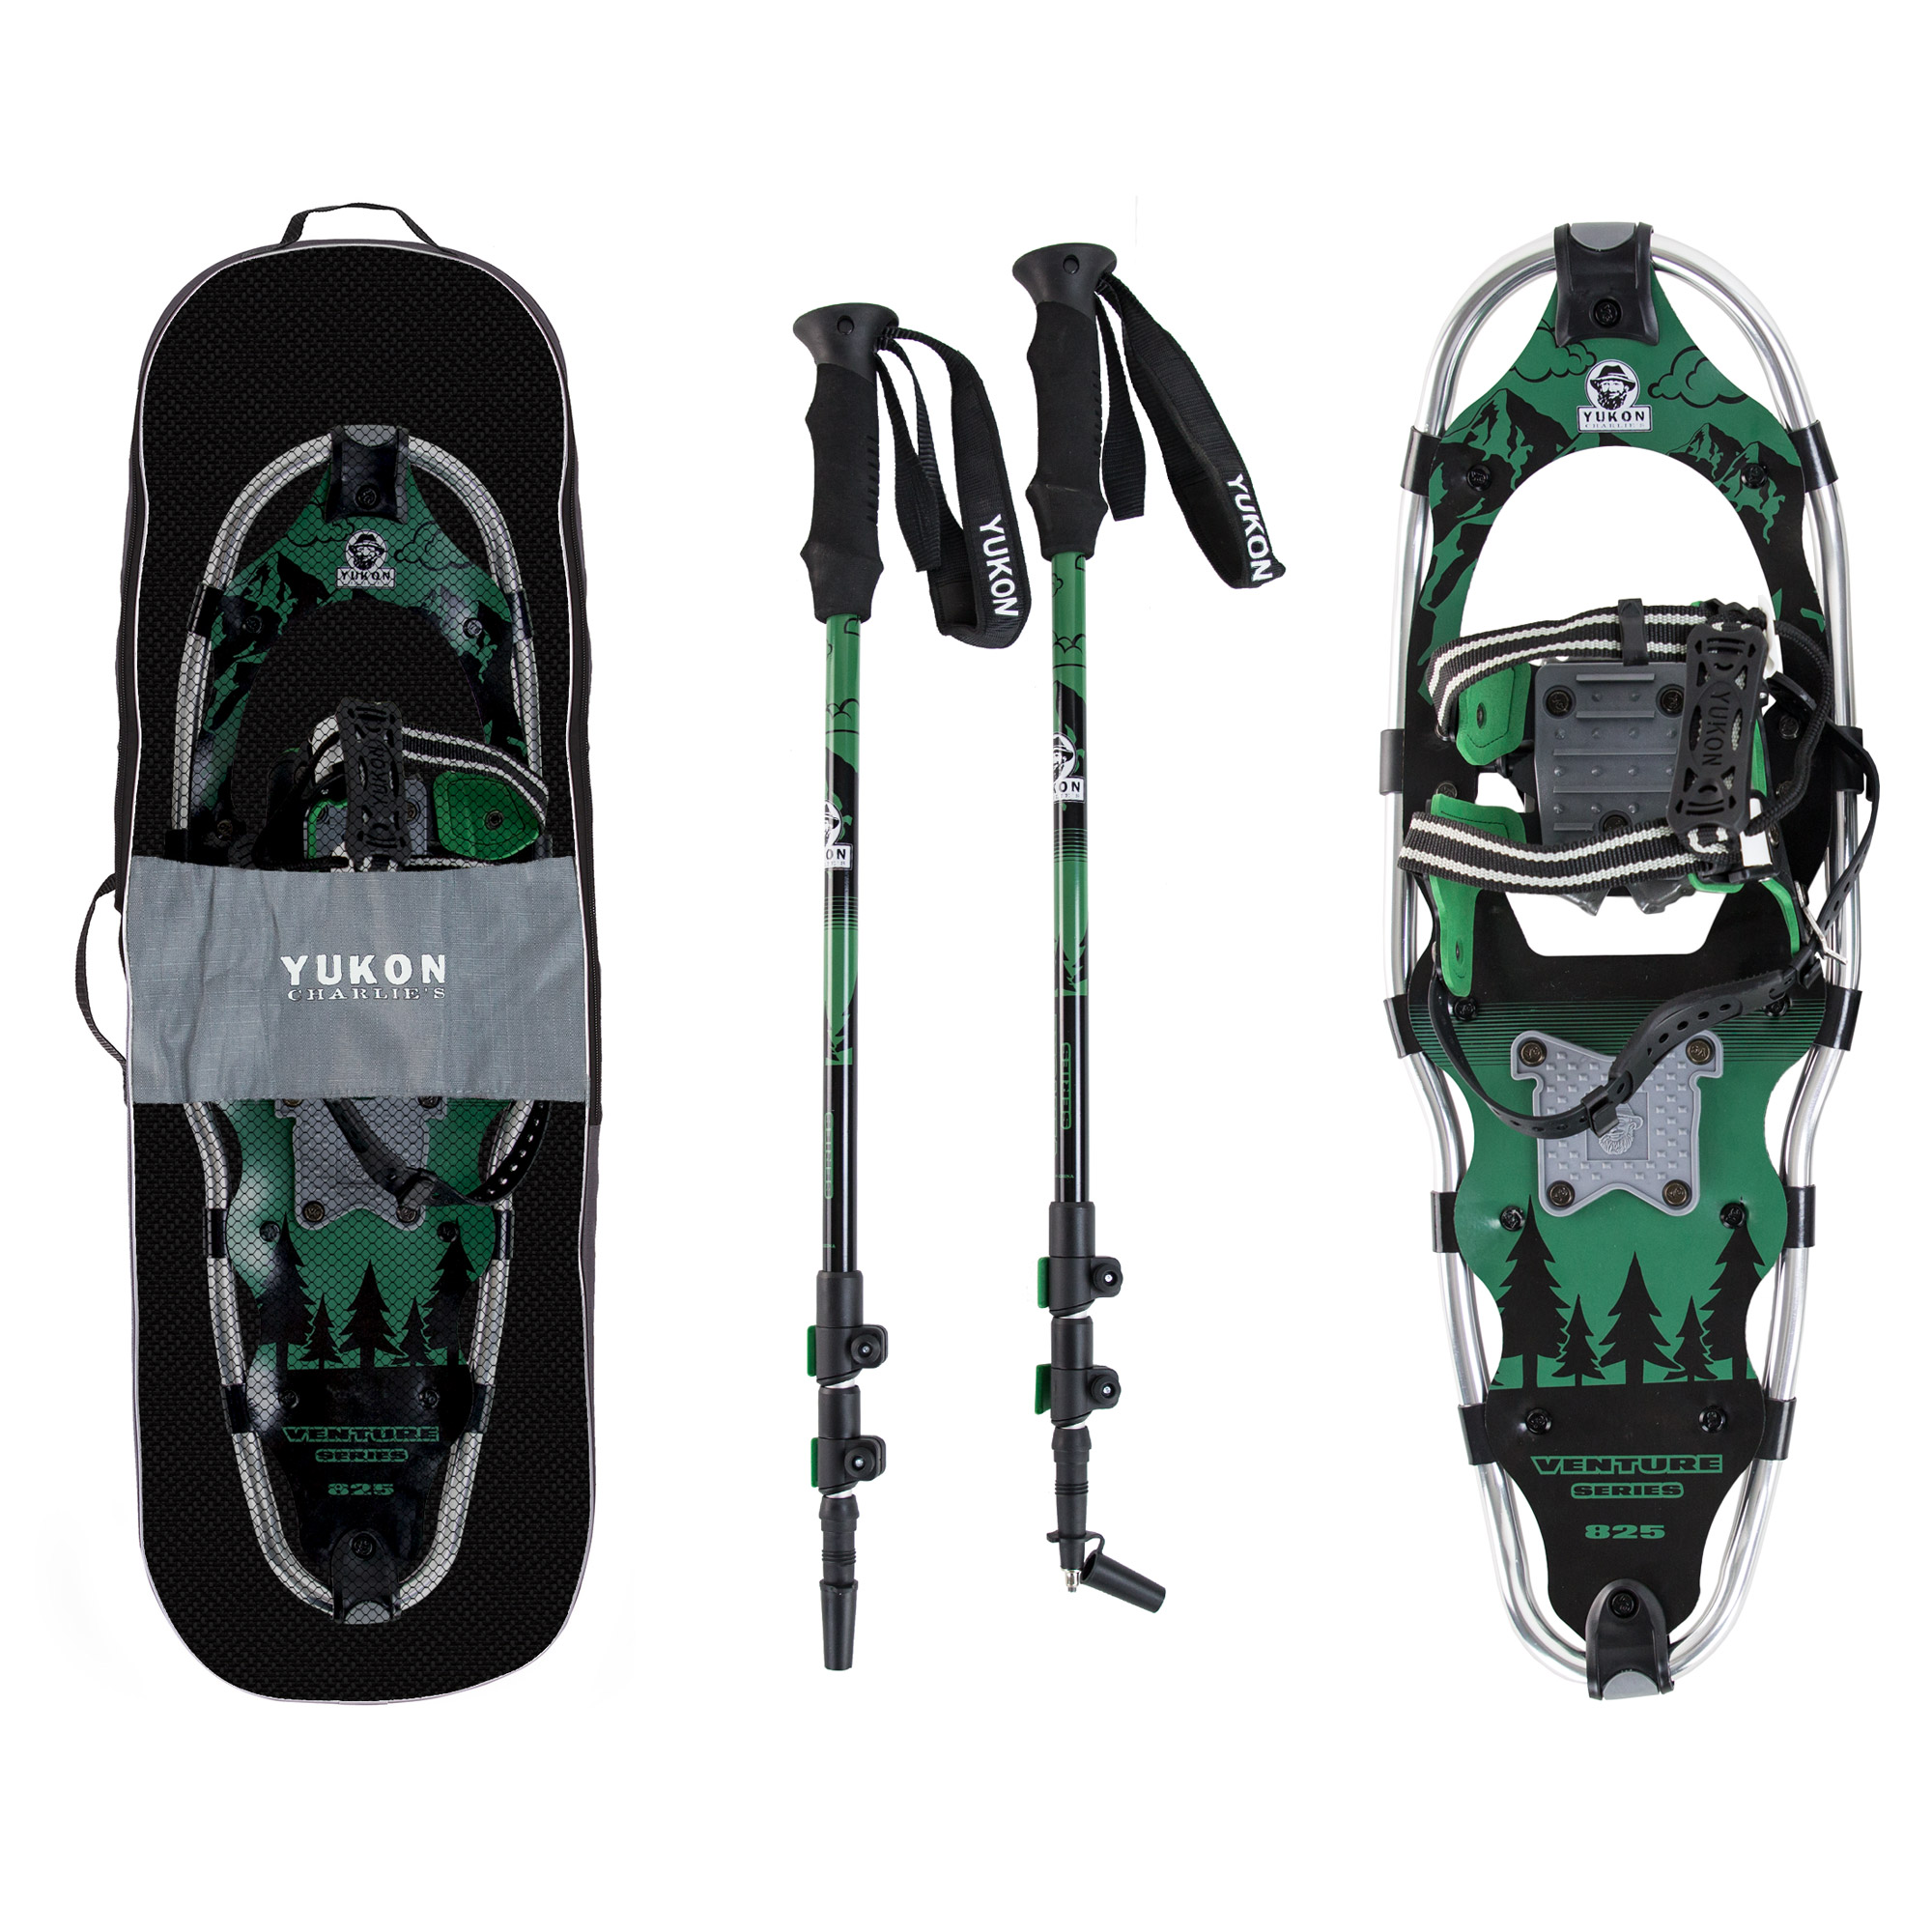 Yukon Charlie's Advanced 9x30 Inch Men's Snowshoe Kit with Aluminum Poles & Bag by Kwik Tek